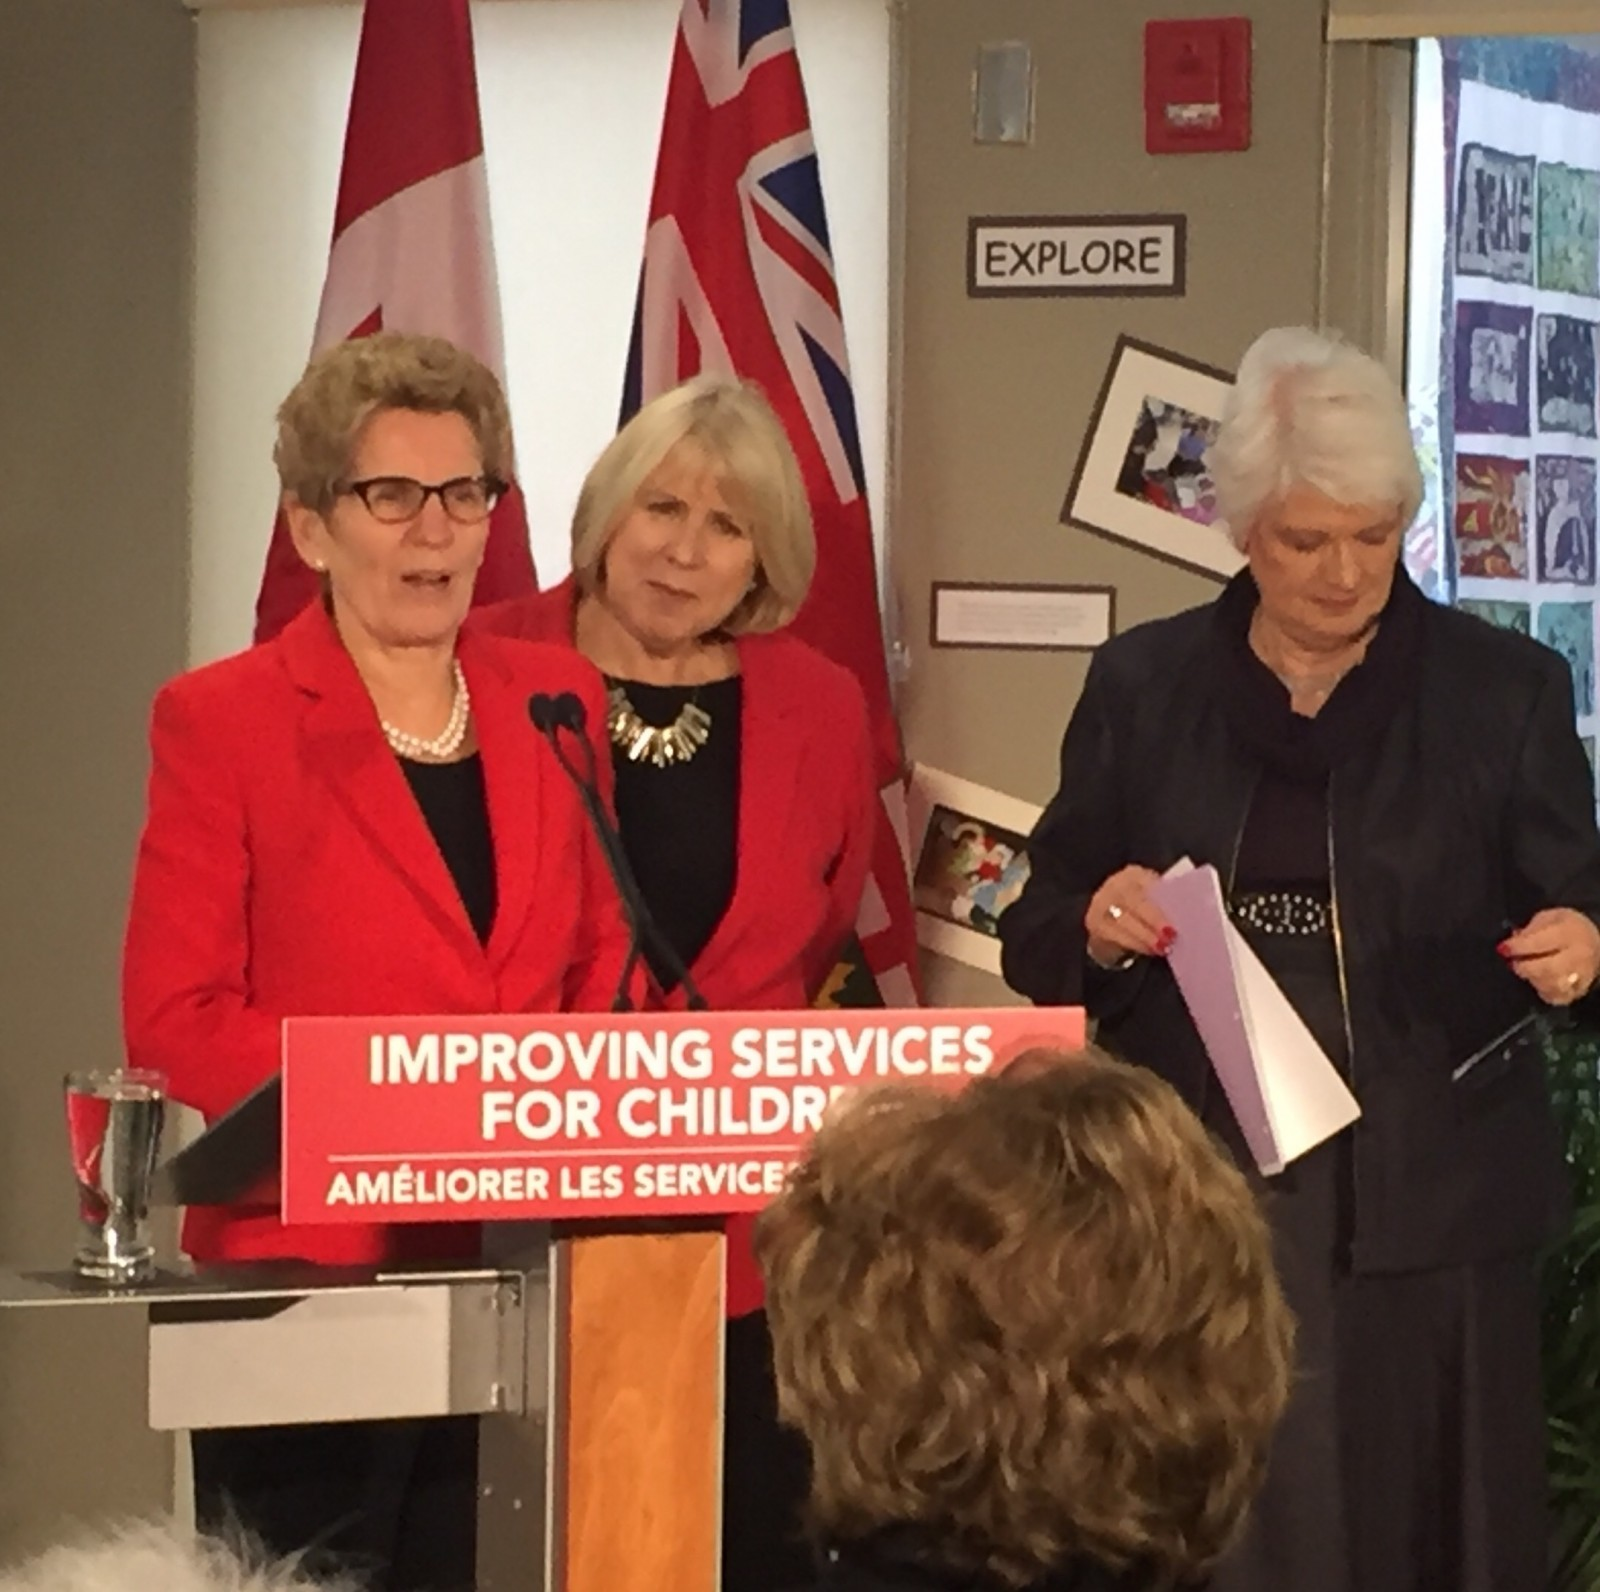 Premier visits London to announce new services for younger families